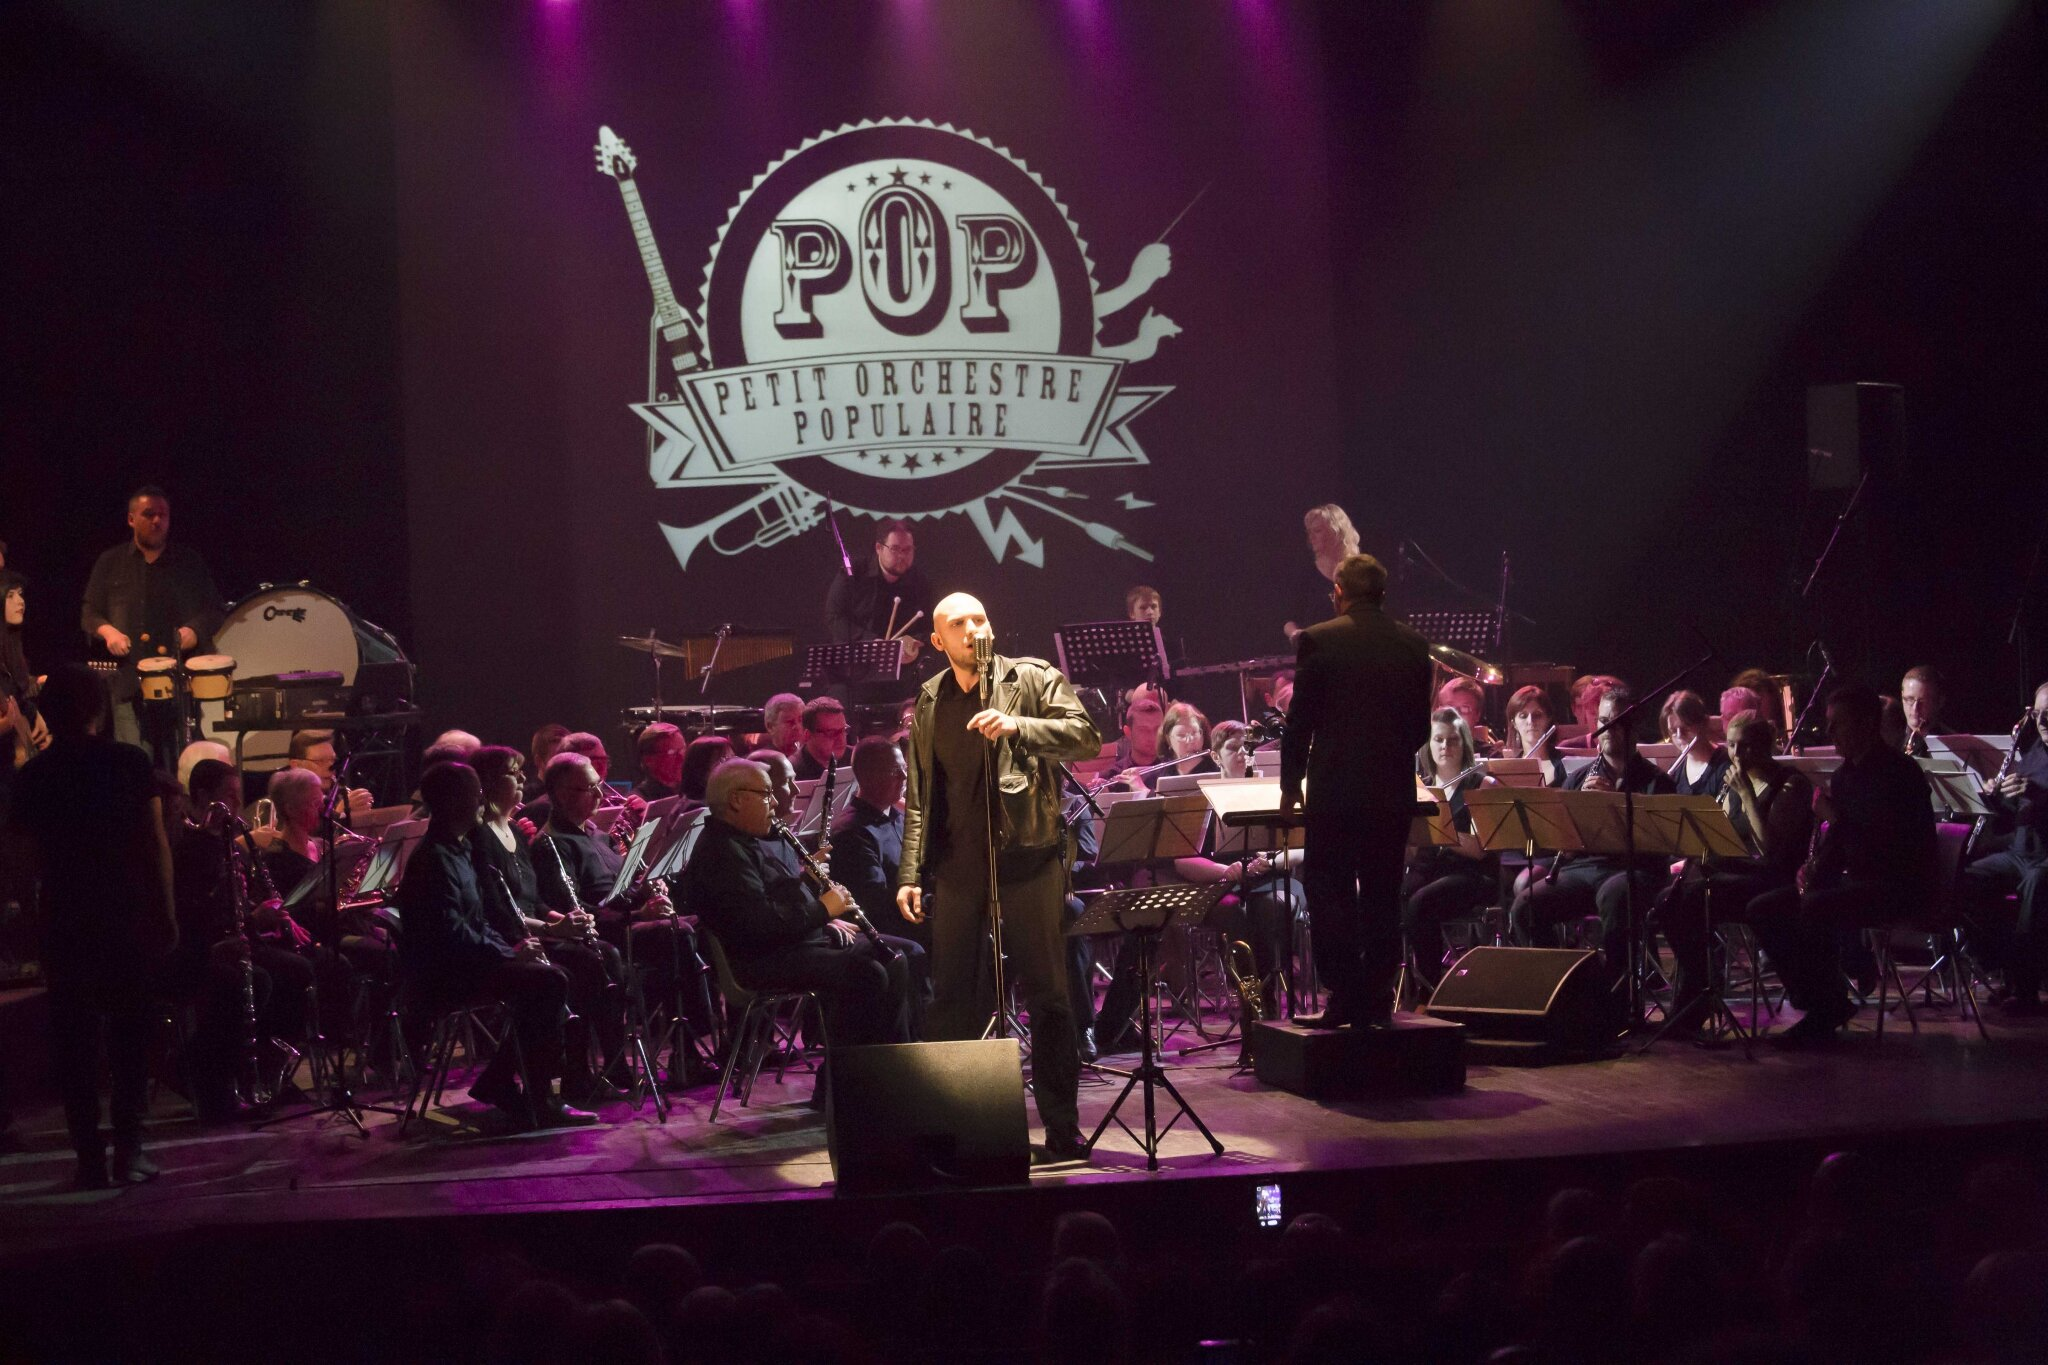 Pop-BougezRock-Manege-Maubeuge2015-205